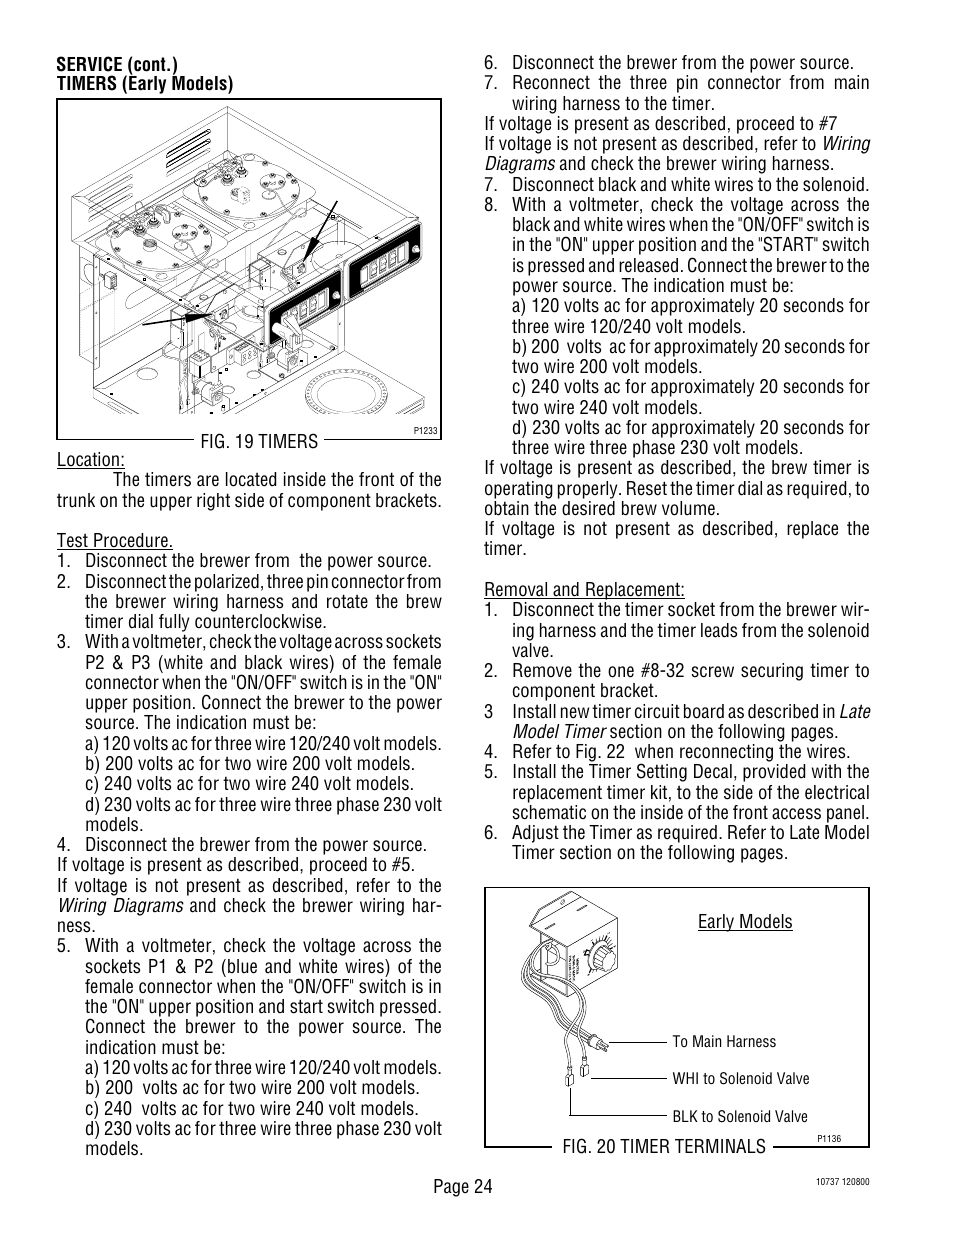 Bunn Cw Wiring Diagram Guide And Troubleshooting Of Twin Switch Diagrams Late Model Timer Page 24 Cwtf Aps User Rh Manualsdir Com Automotive 3 Way